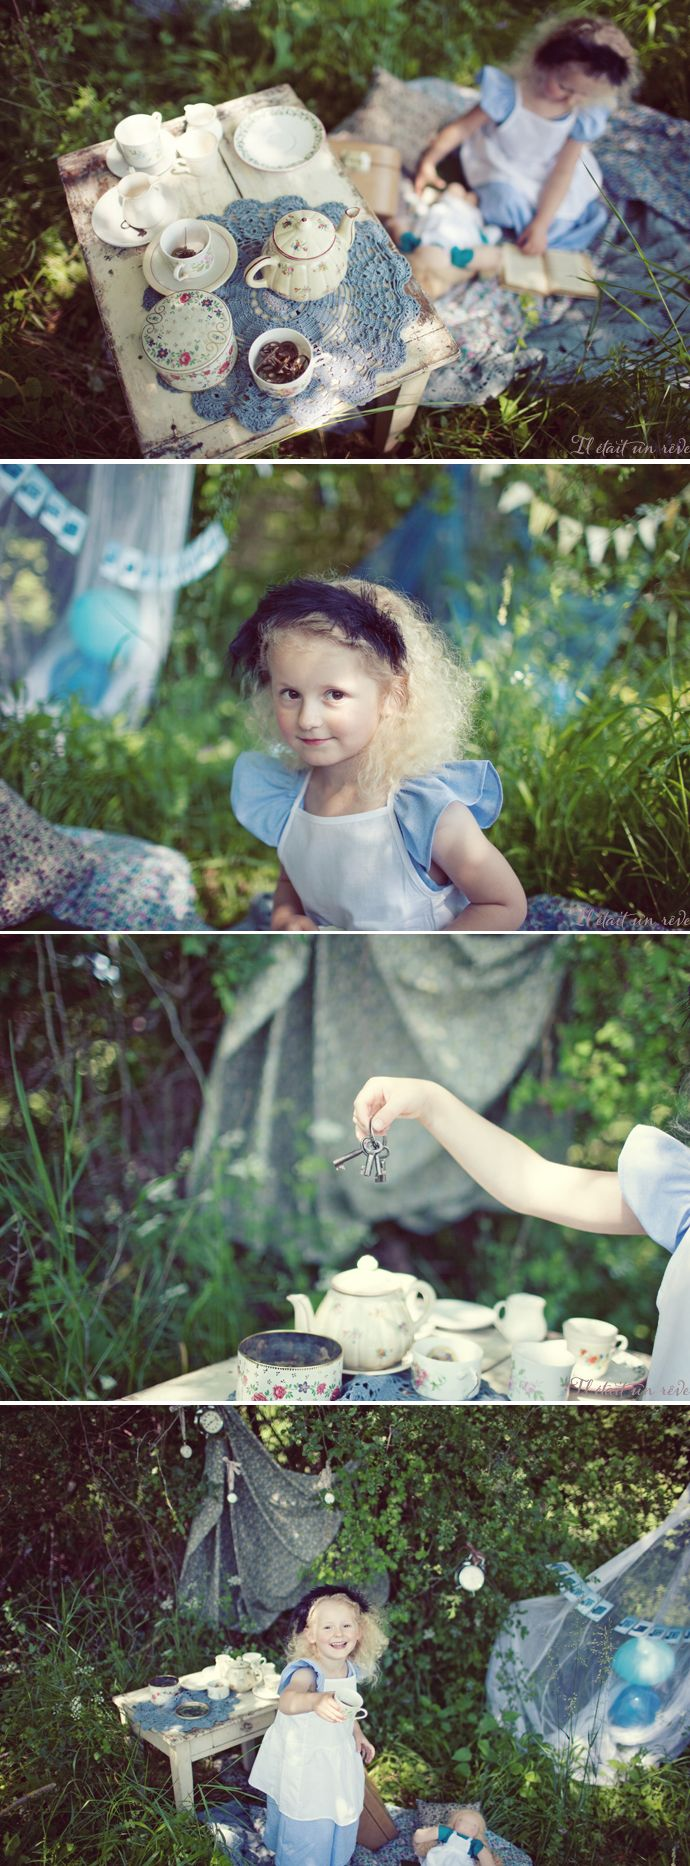 Alice in Wonderland inspired kids photoshoot, super cute!